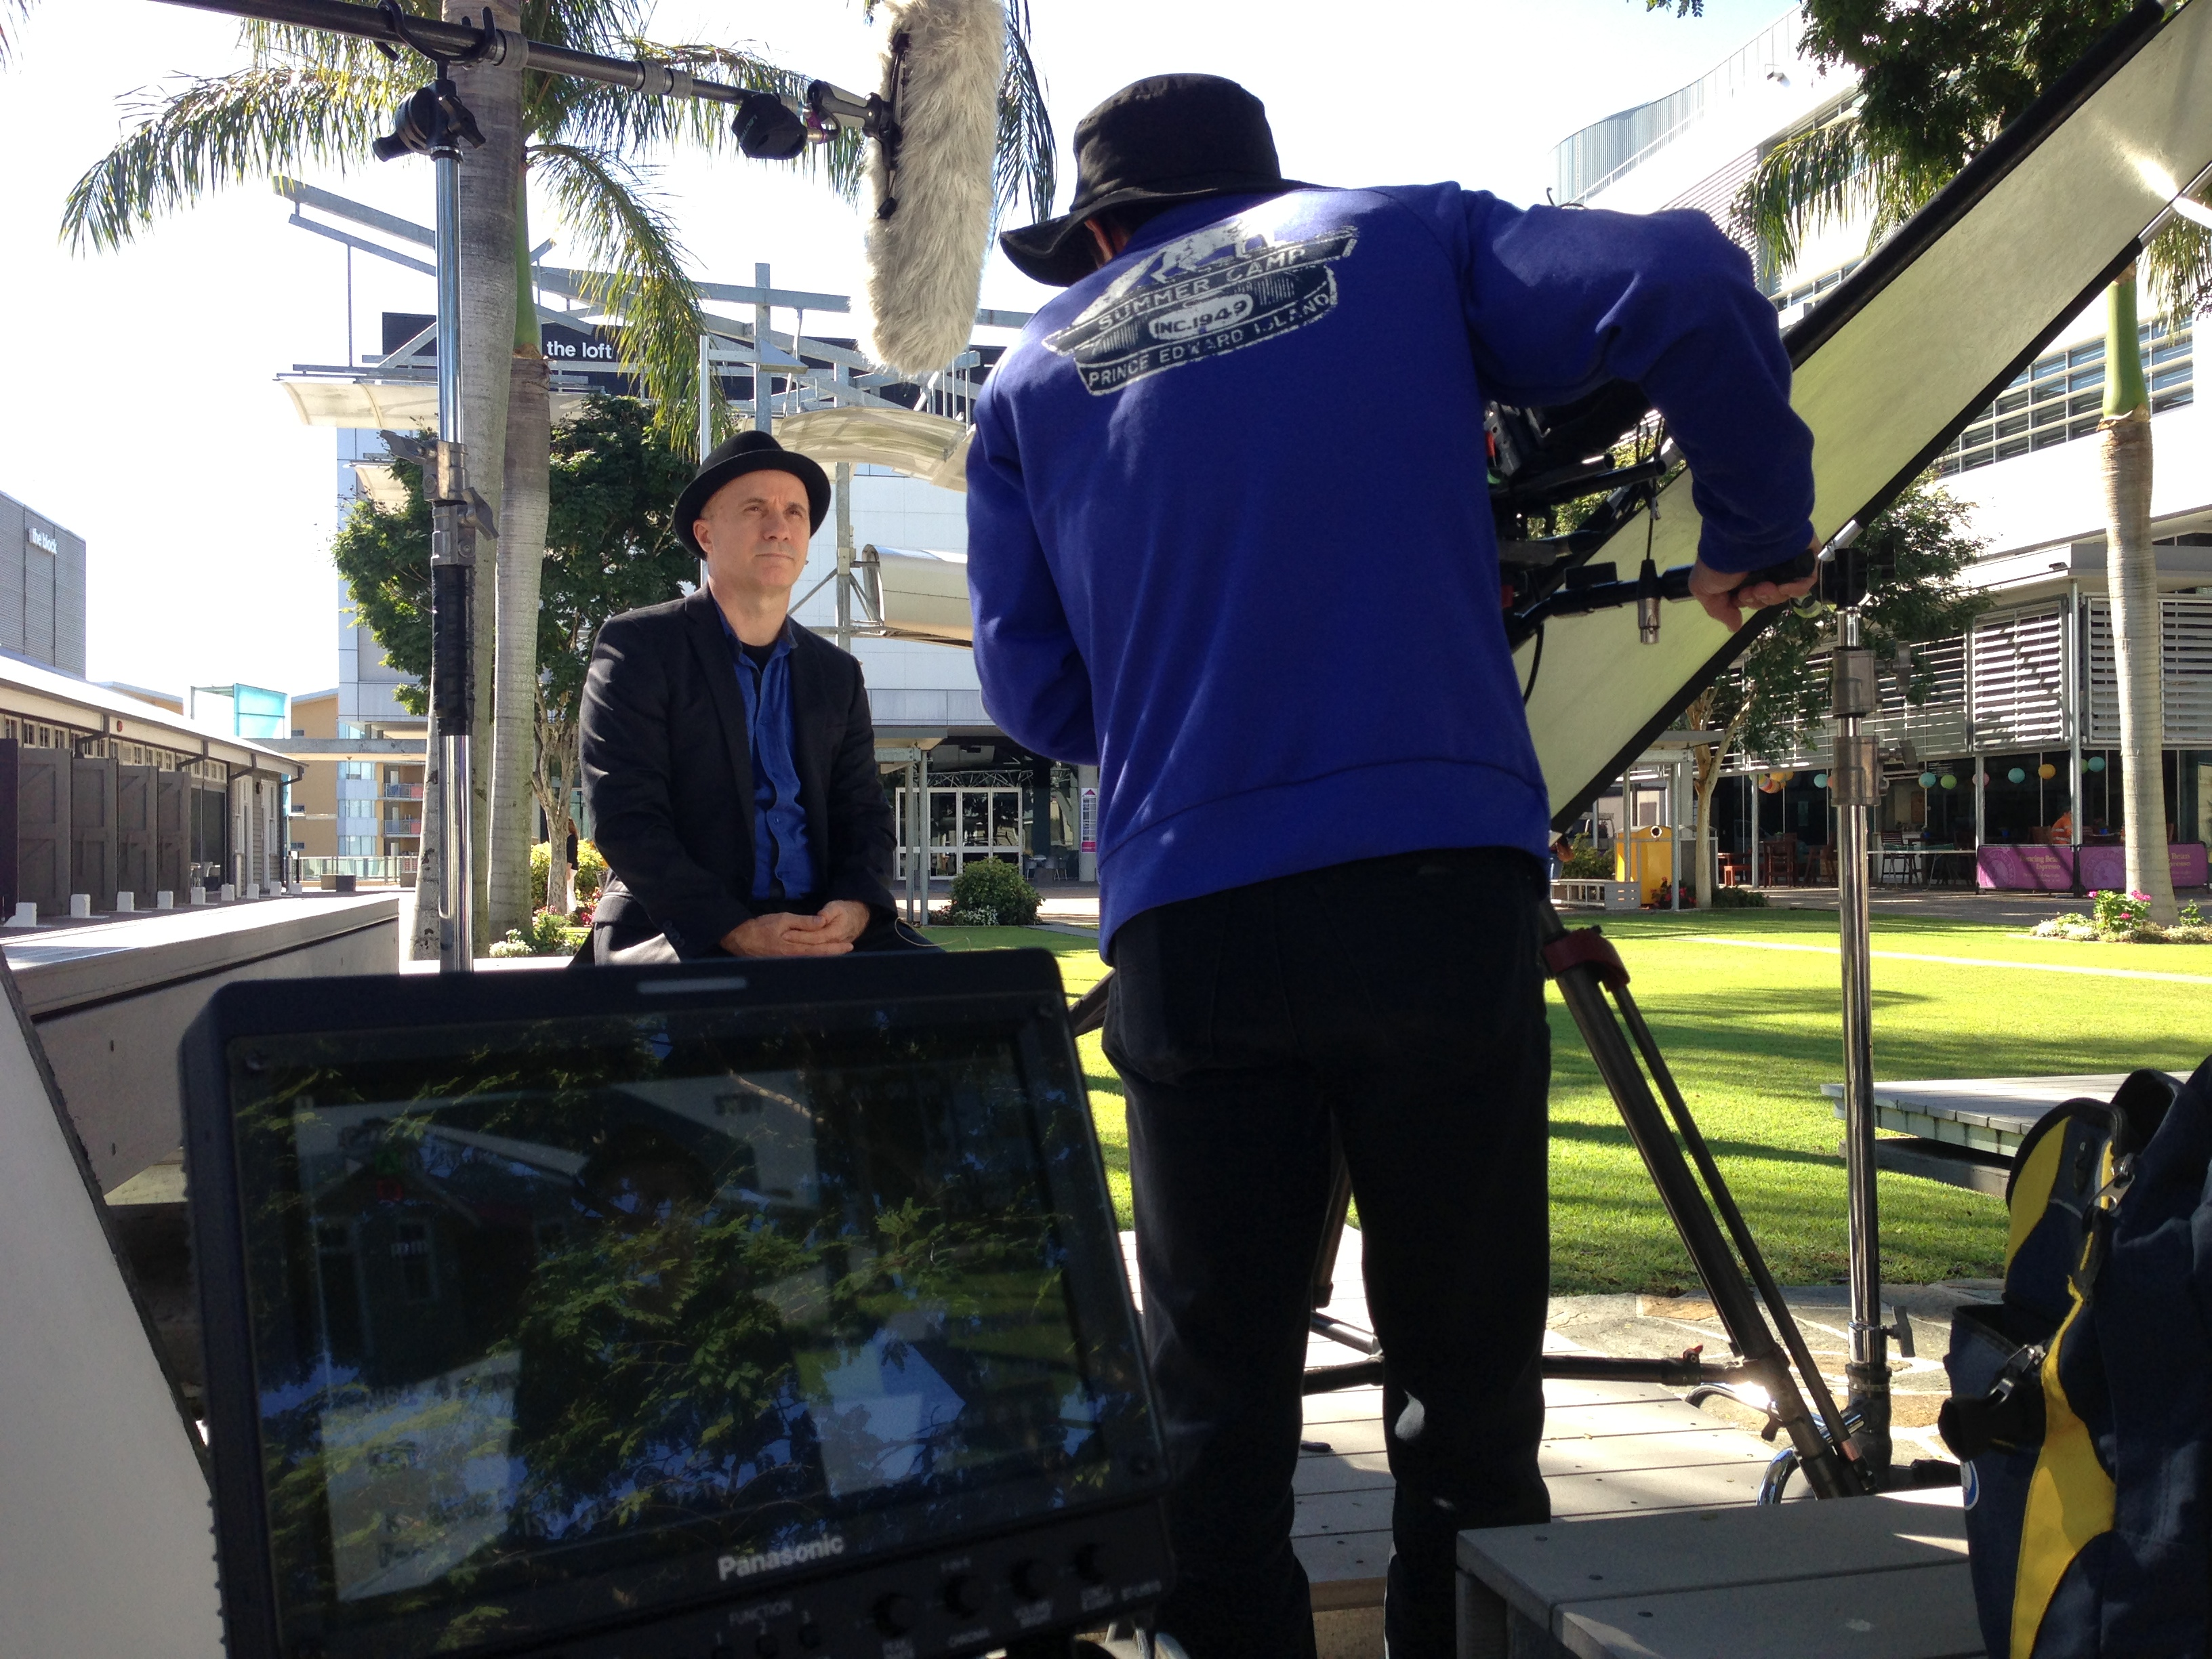 QUT corporate broadcast television production camera xdcam cameraman trevor smit